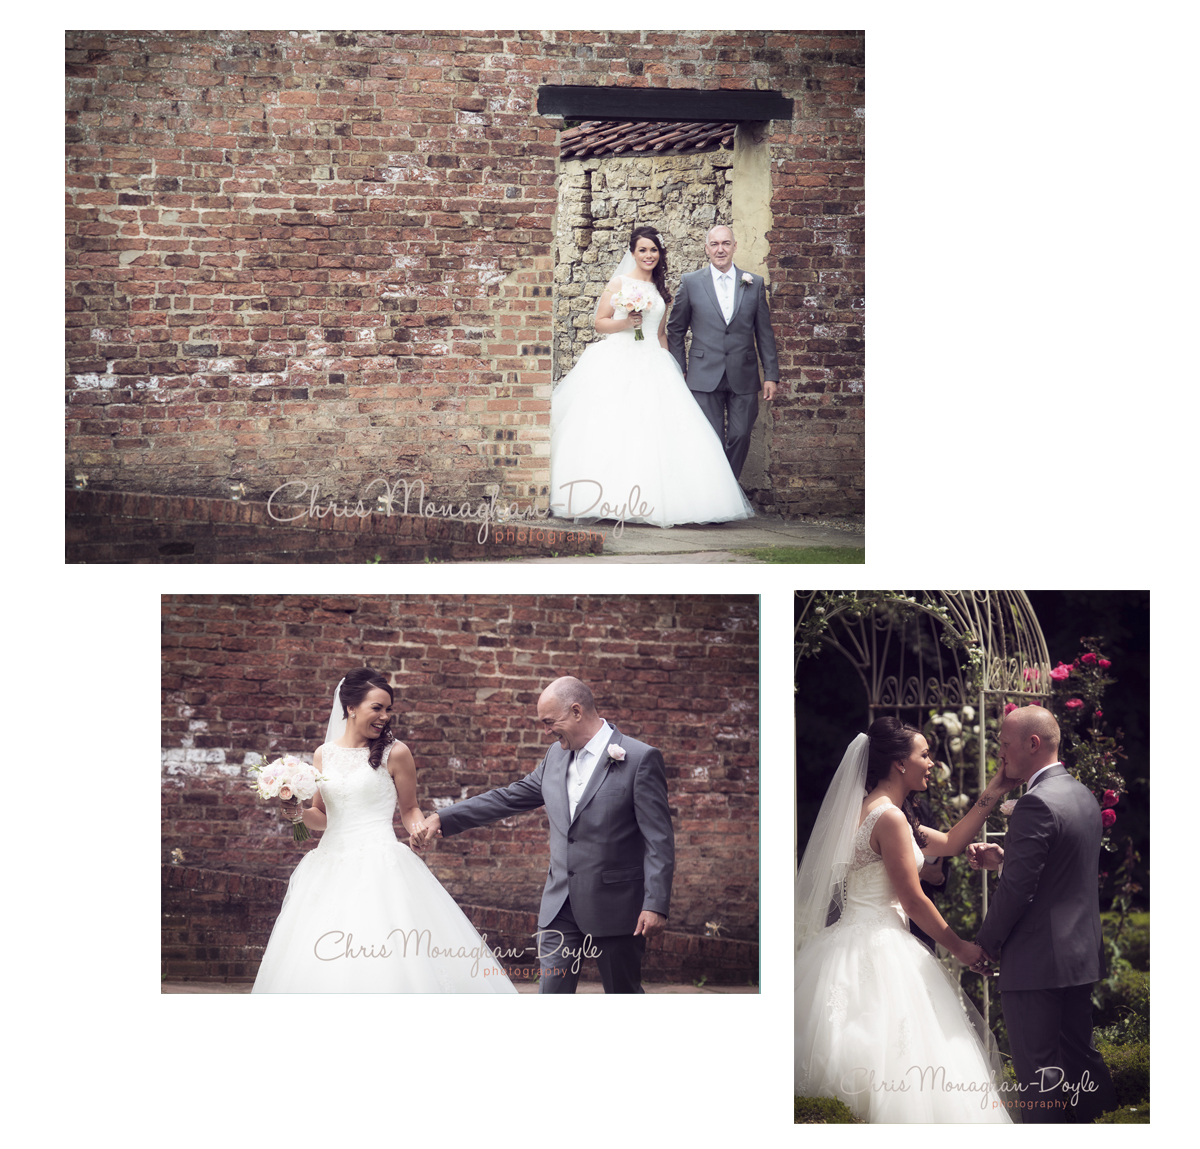 Hardwick Hall Wedding Chris Monaghan-Doyle Photography 4